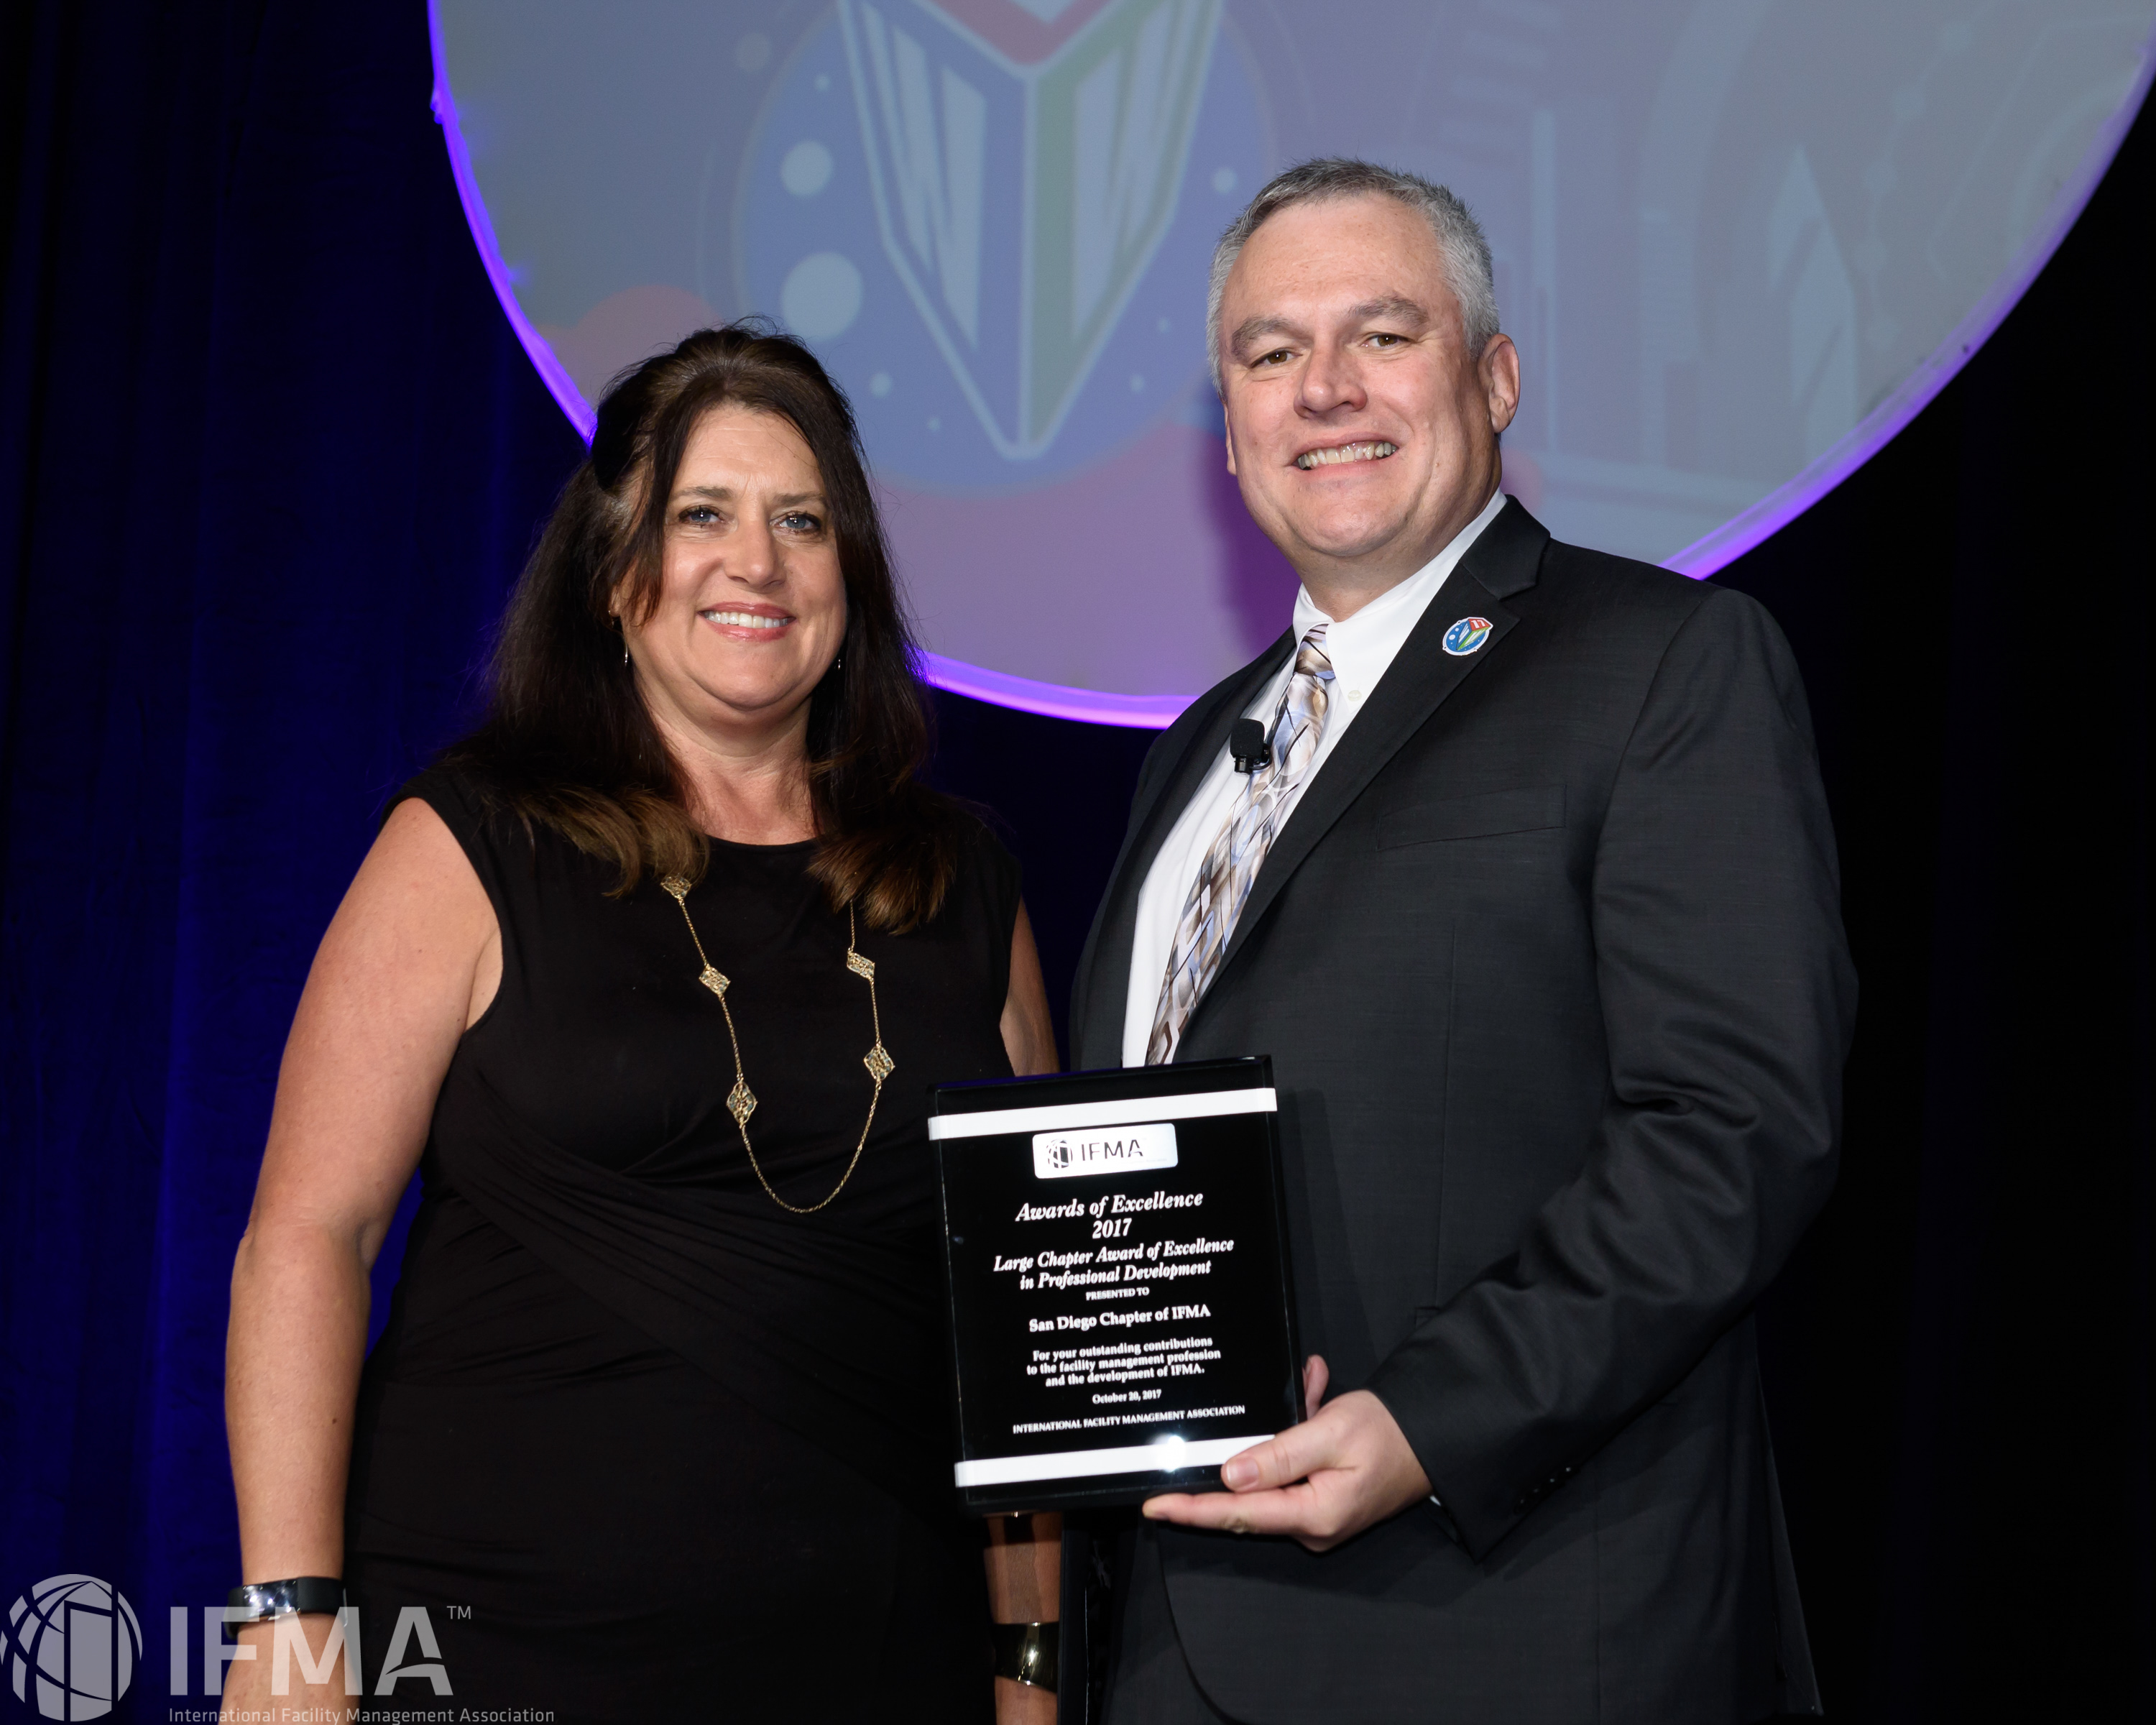 San Diego Chapter of IFMA receives Large Chapter Award of Excellence in Professional Development